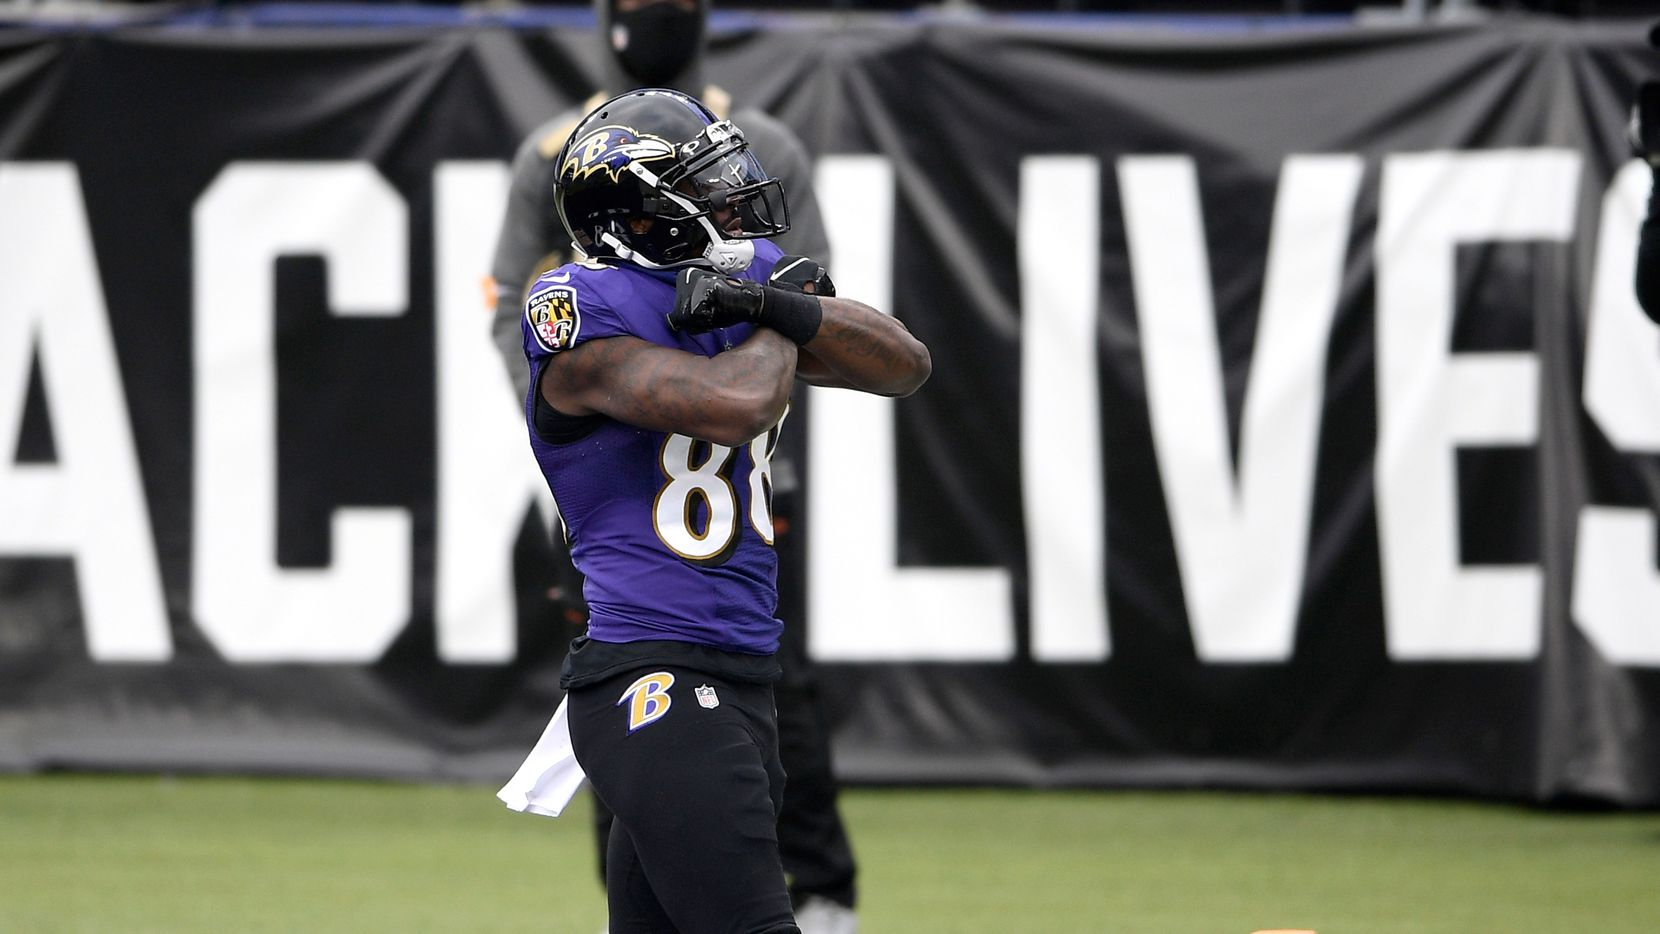 Baltimore Ravens wide receiver Dez Bryant reacts after scoring a touchdown against the Jacksonville Jaguars during the first half of an NFL football game, Sunday, Dec. 20, 2020, in Baltimore.